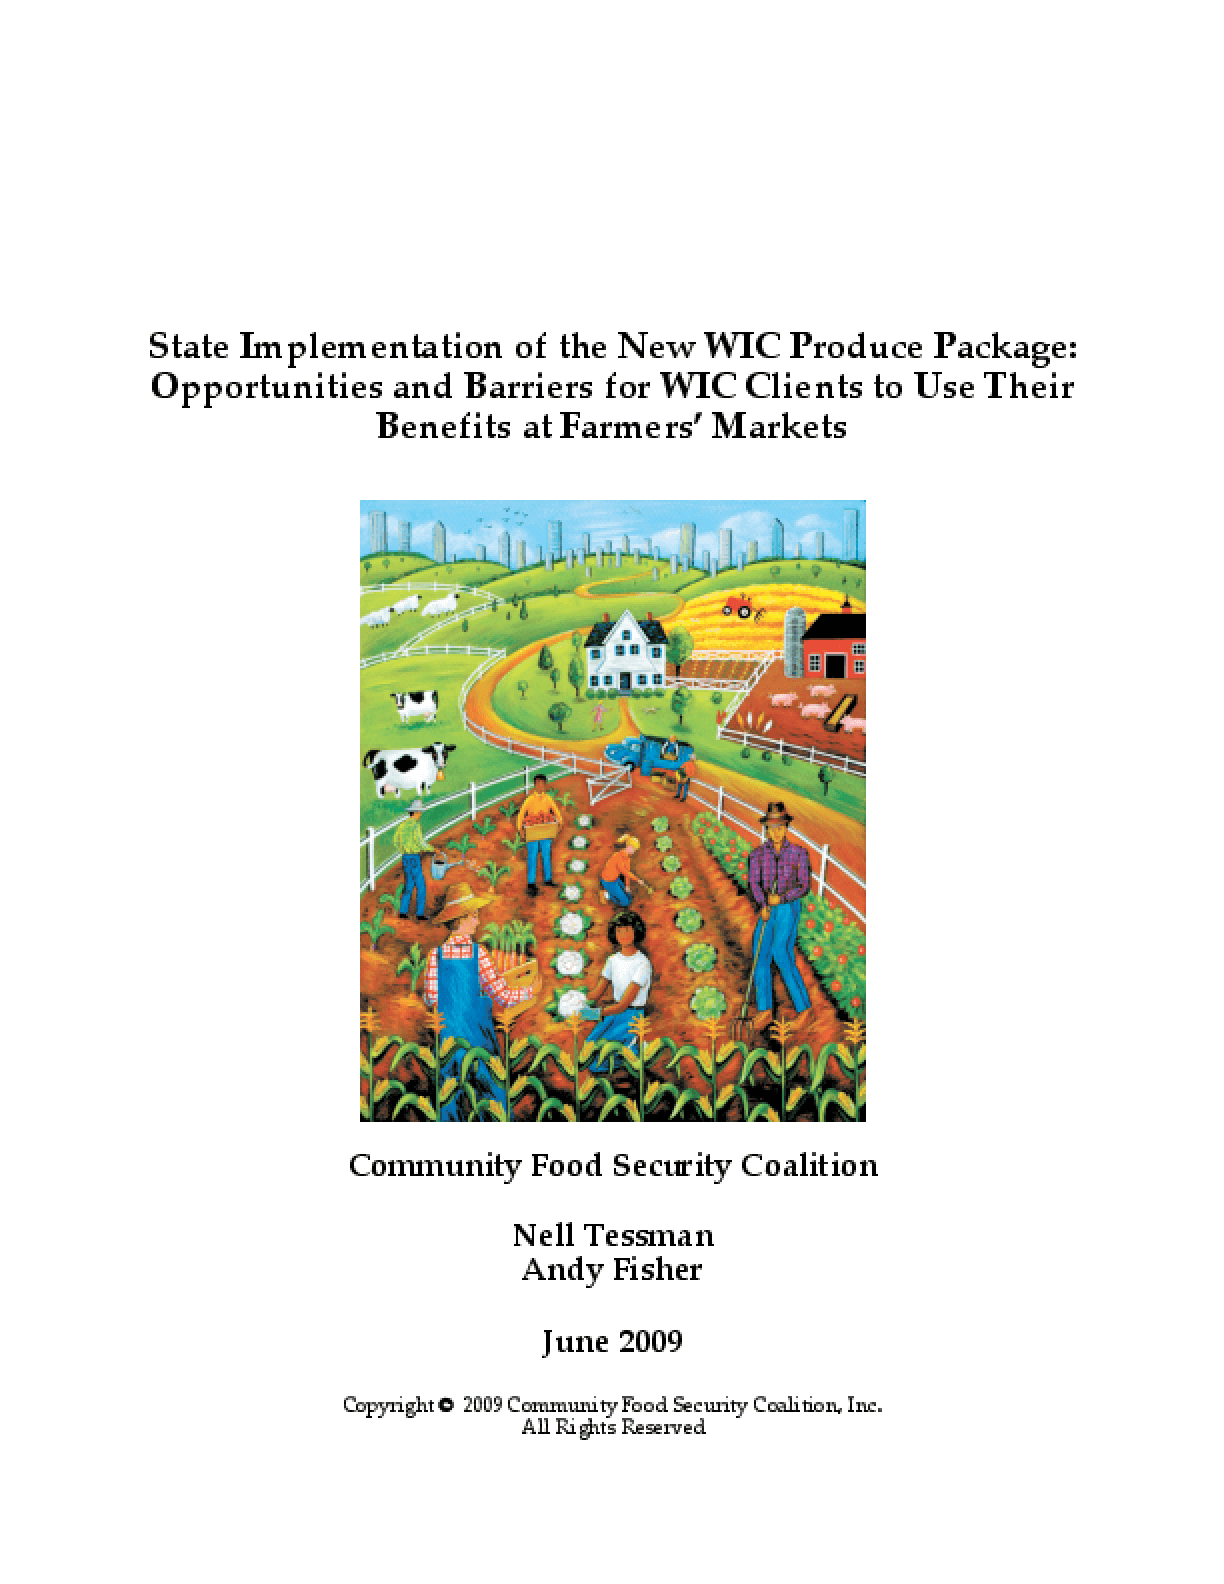 State Implementation of the New WIC Produce Package: Opportunities and Barriers for WIC Clients to Use Their Benefits at Farmers' Markets